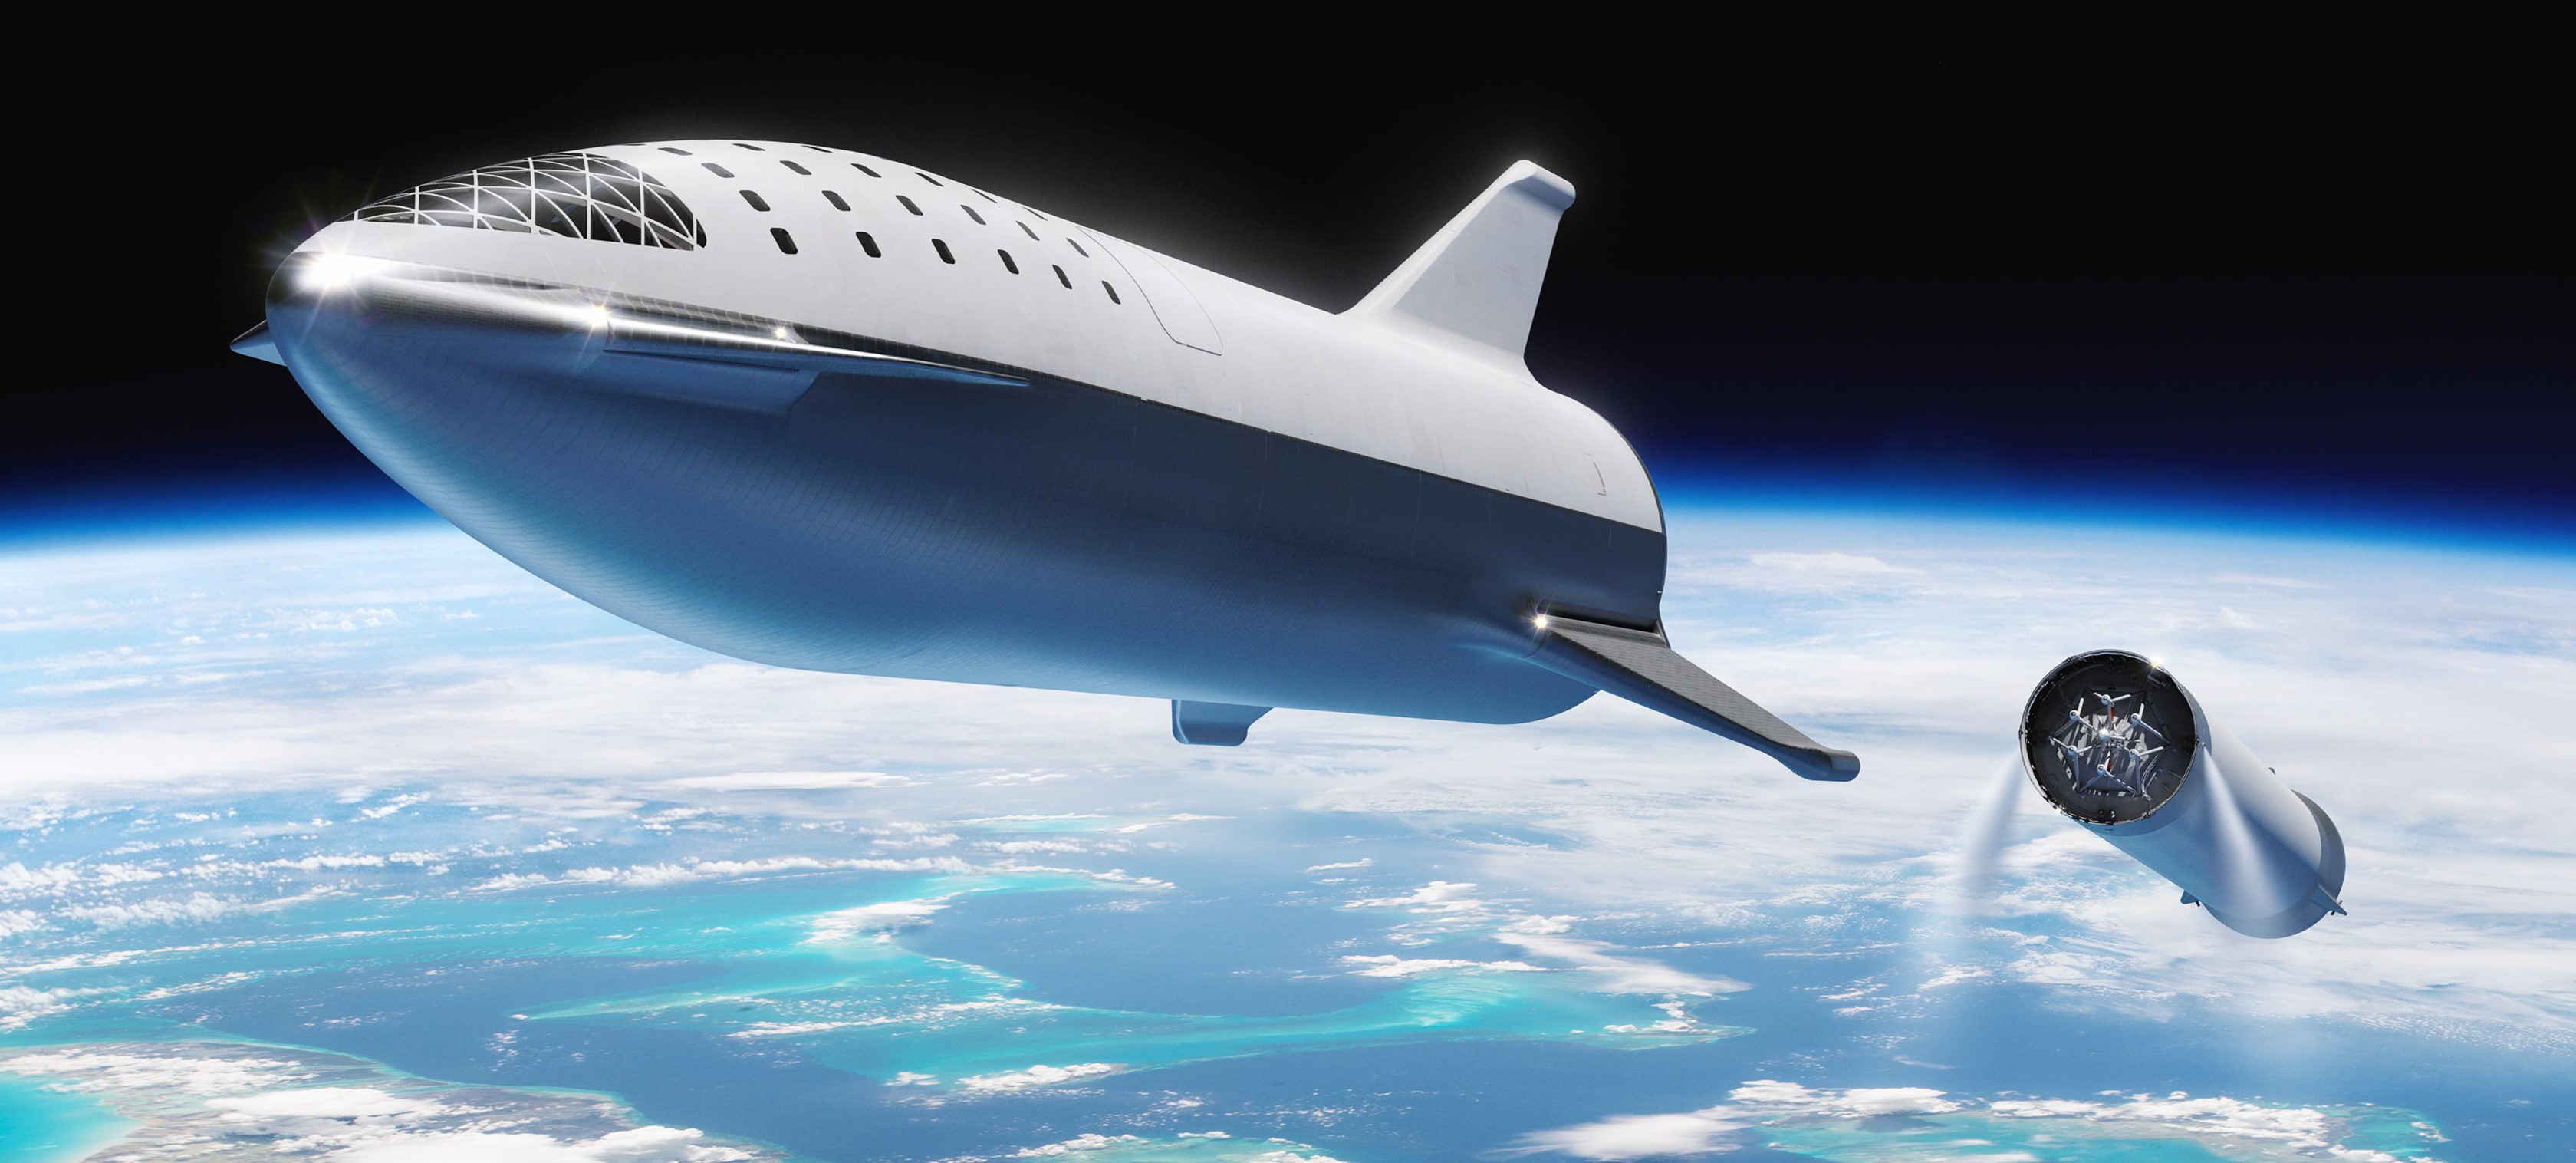 Spacex To Build Small Version Of Bfrs Spaceship For Use On Falcon 9